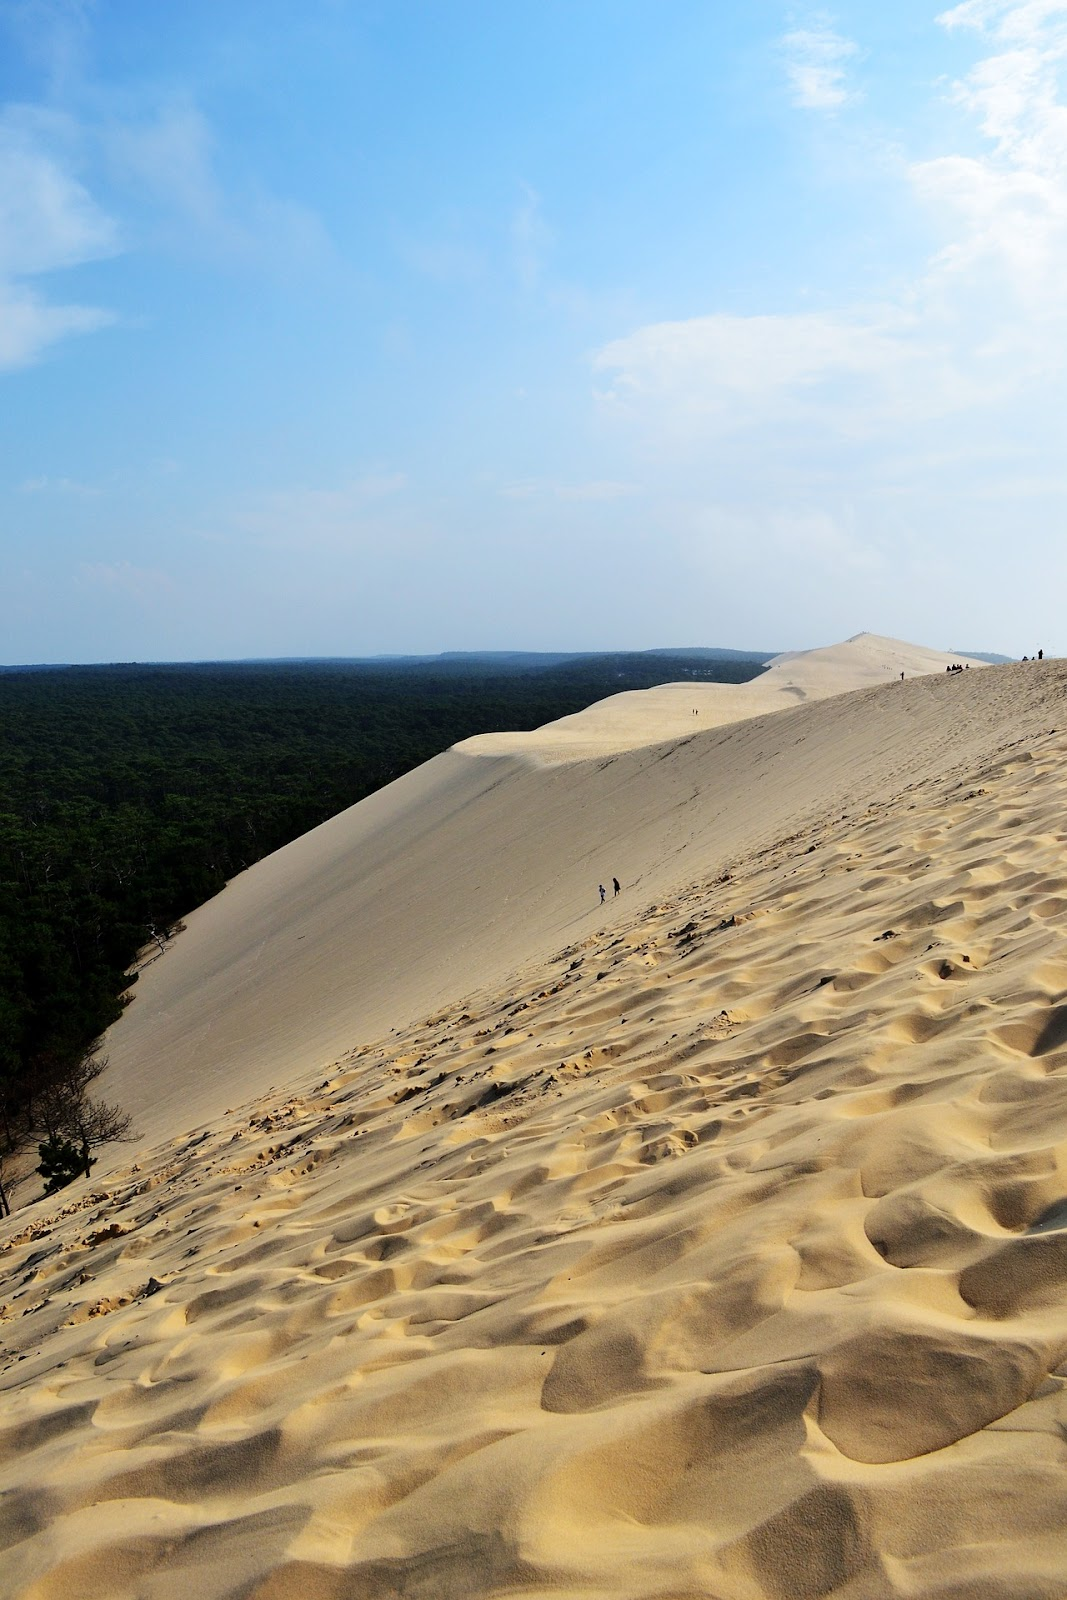 pilat france largest sand dune in europe large sand hill with people climbing and green trees in background